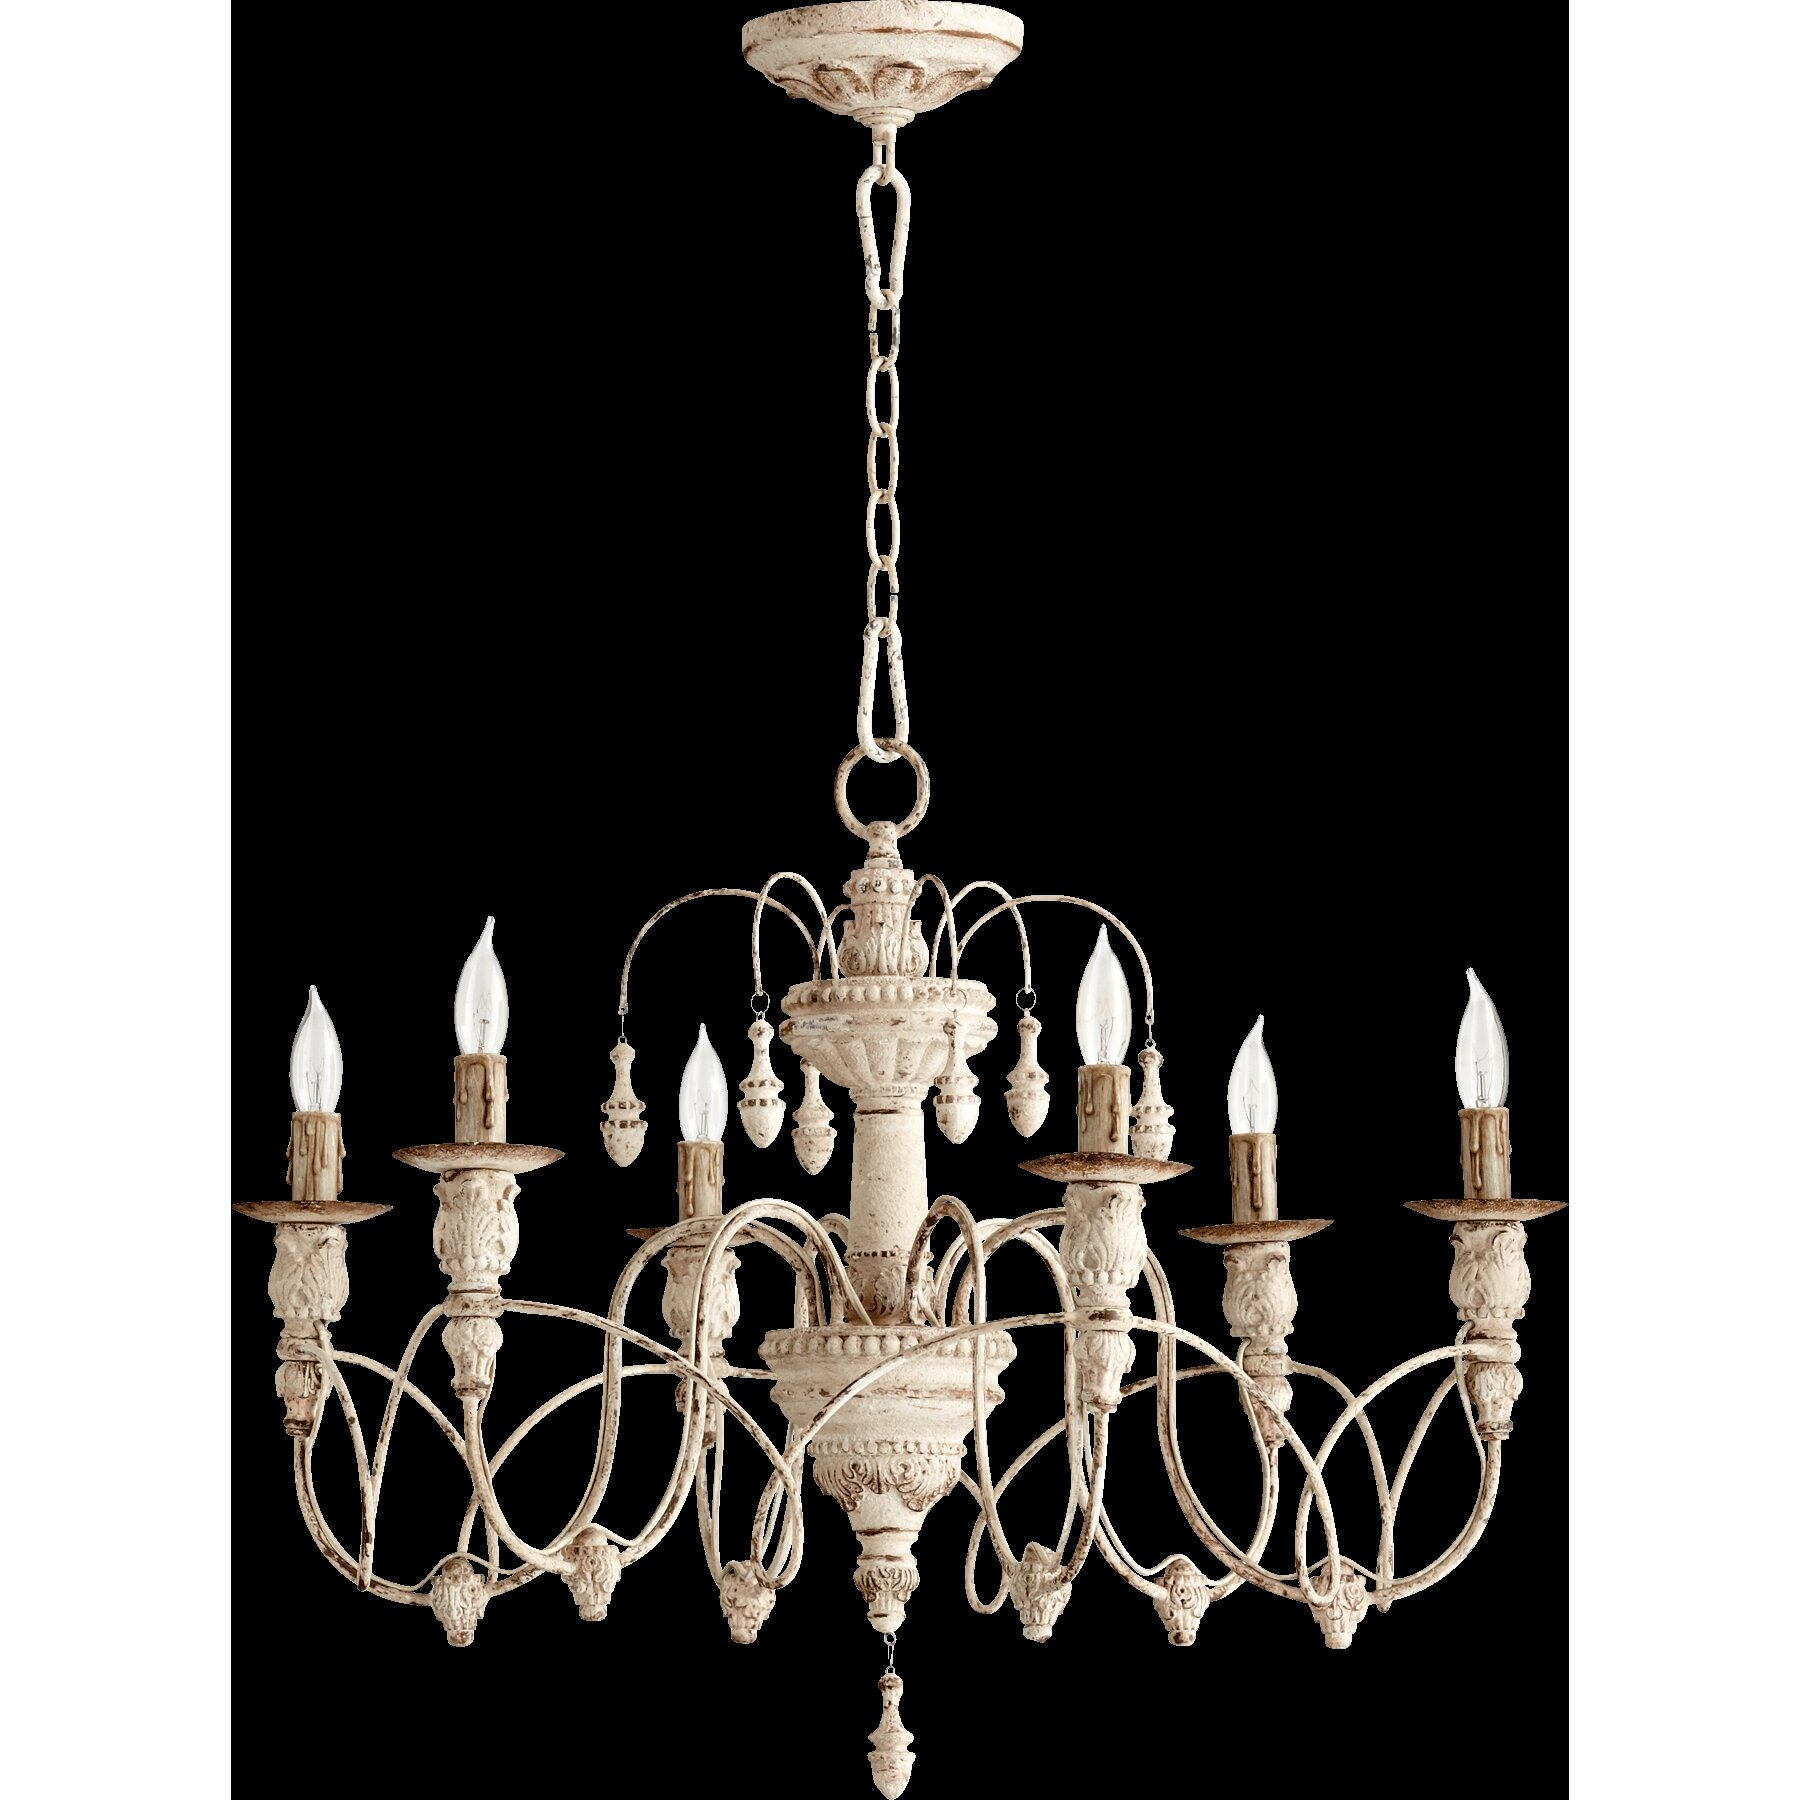 Wayfair Chandelier: Quorum Salento 6 Light Chandelier & Reviews